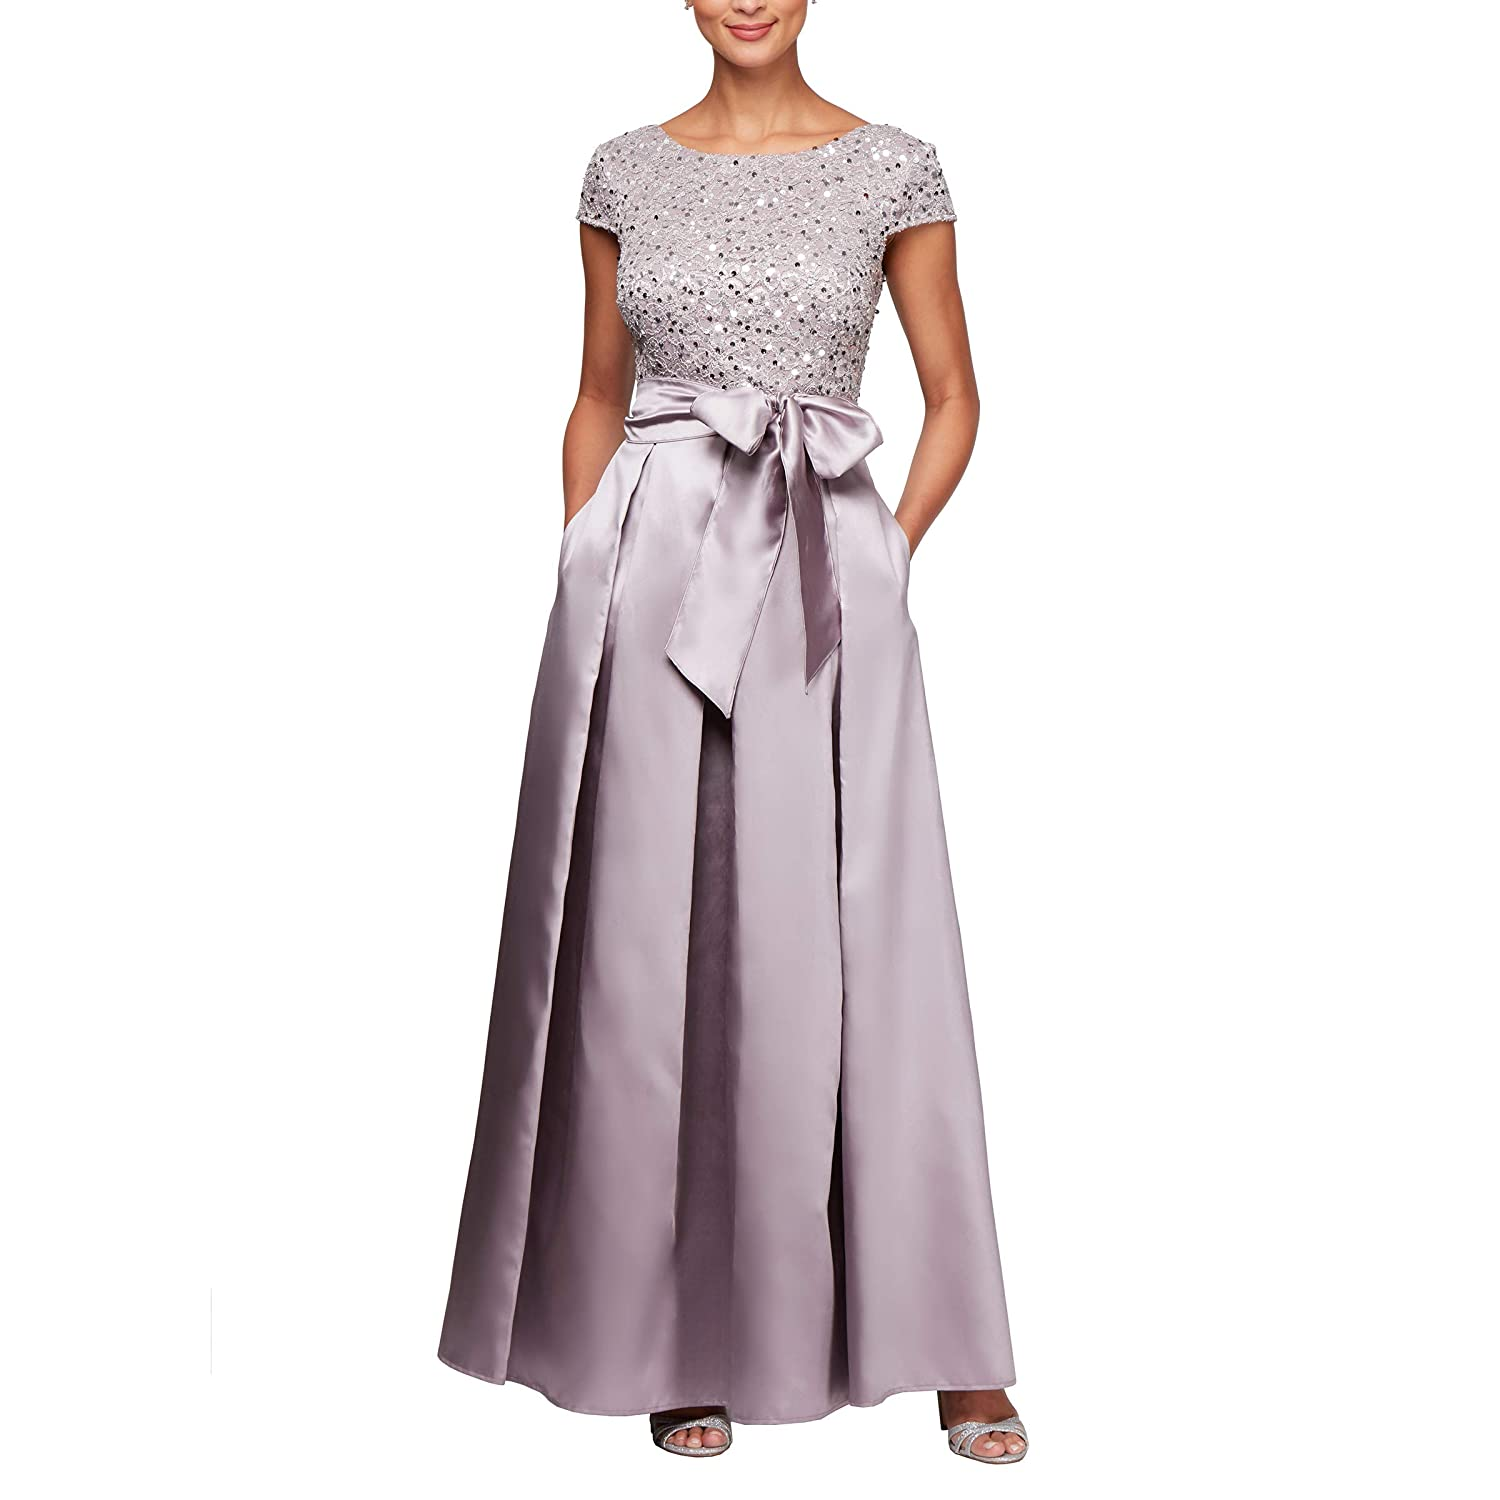 b0aca315310 Top1  Alex Evenings Women s Lace and Satin Ballgown Dress with Sleeve